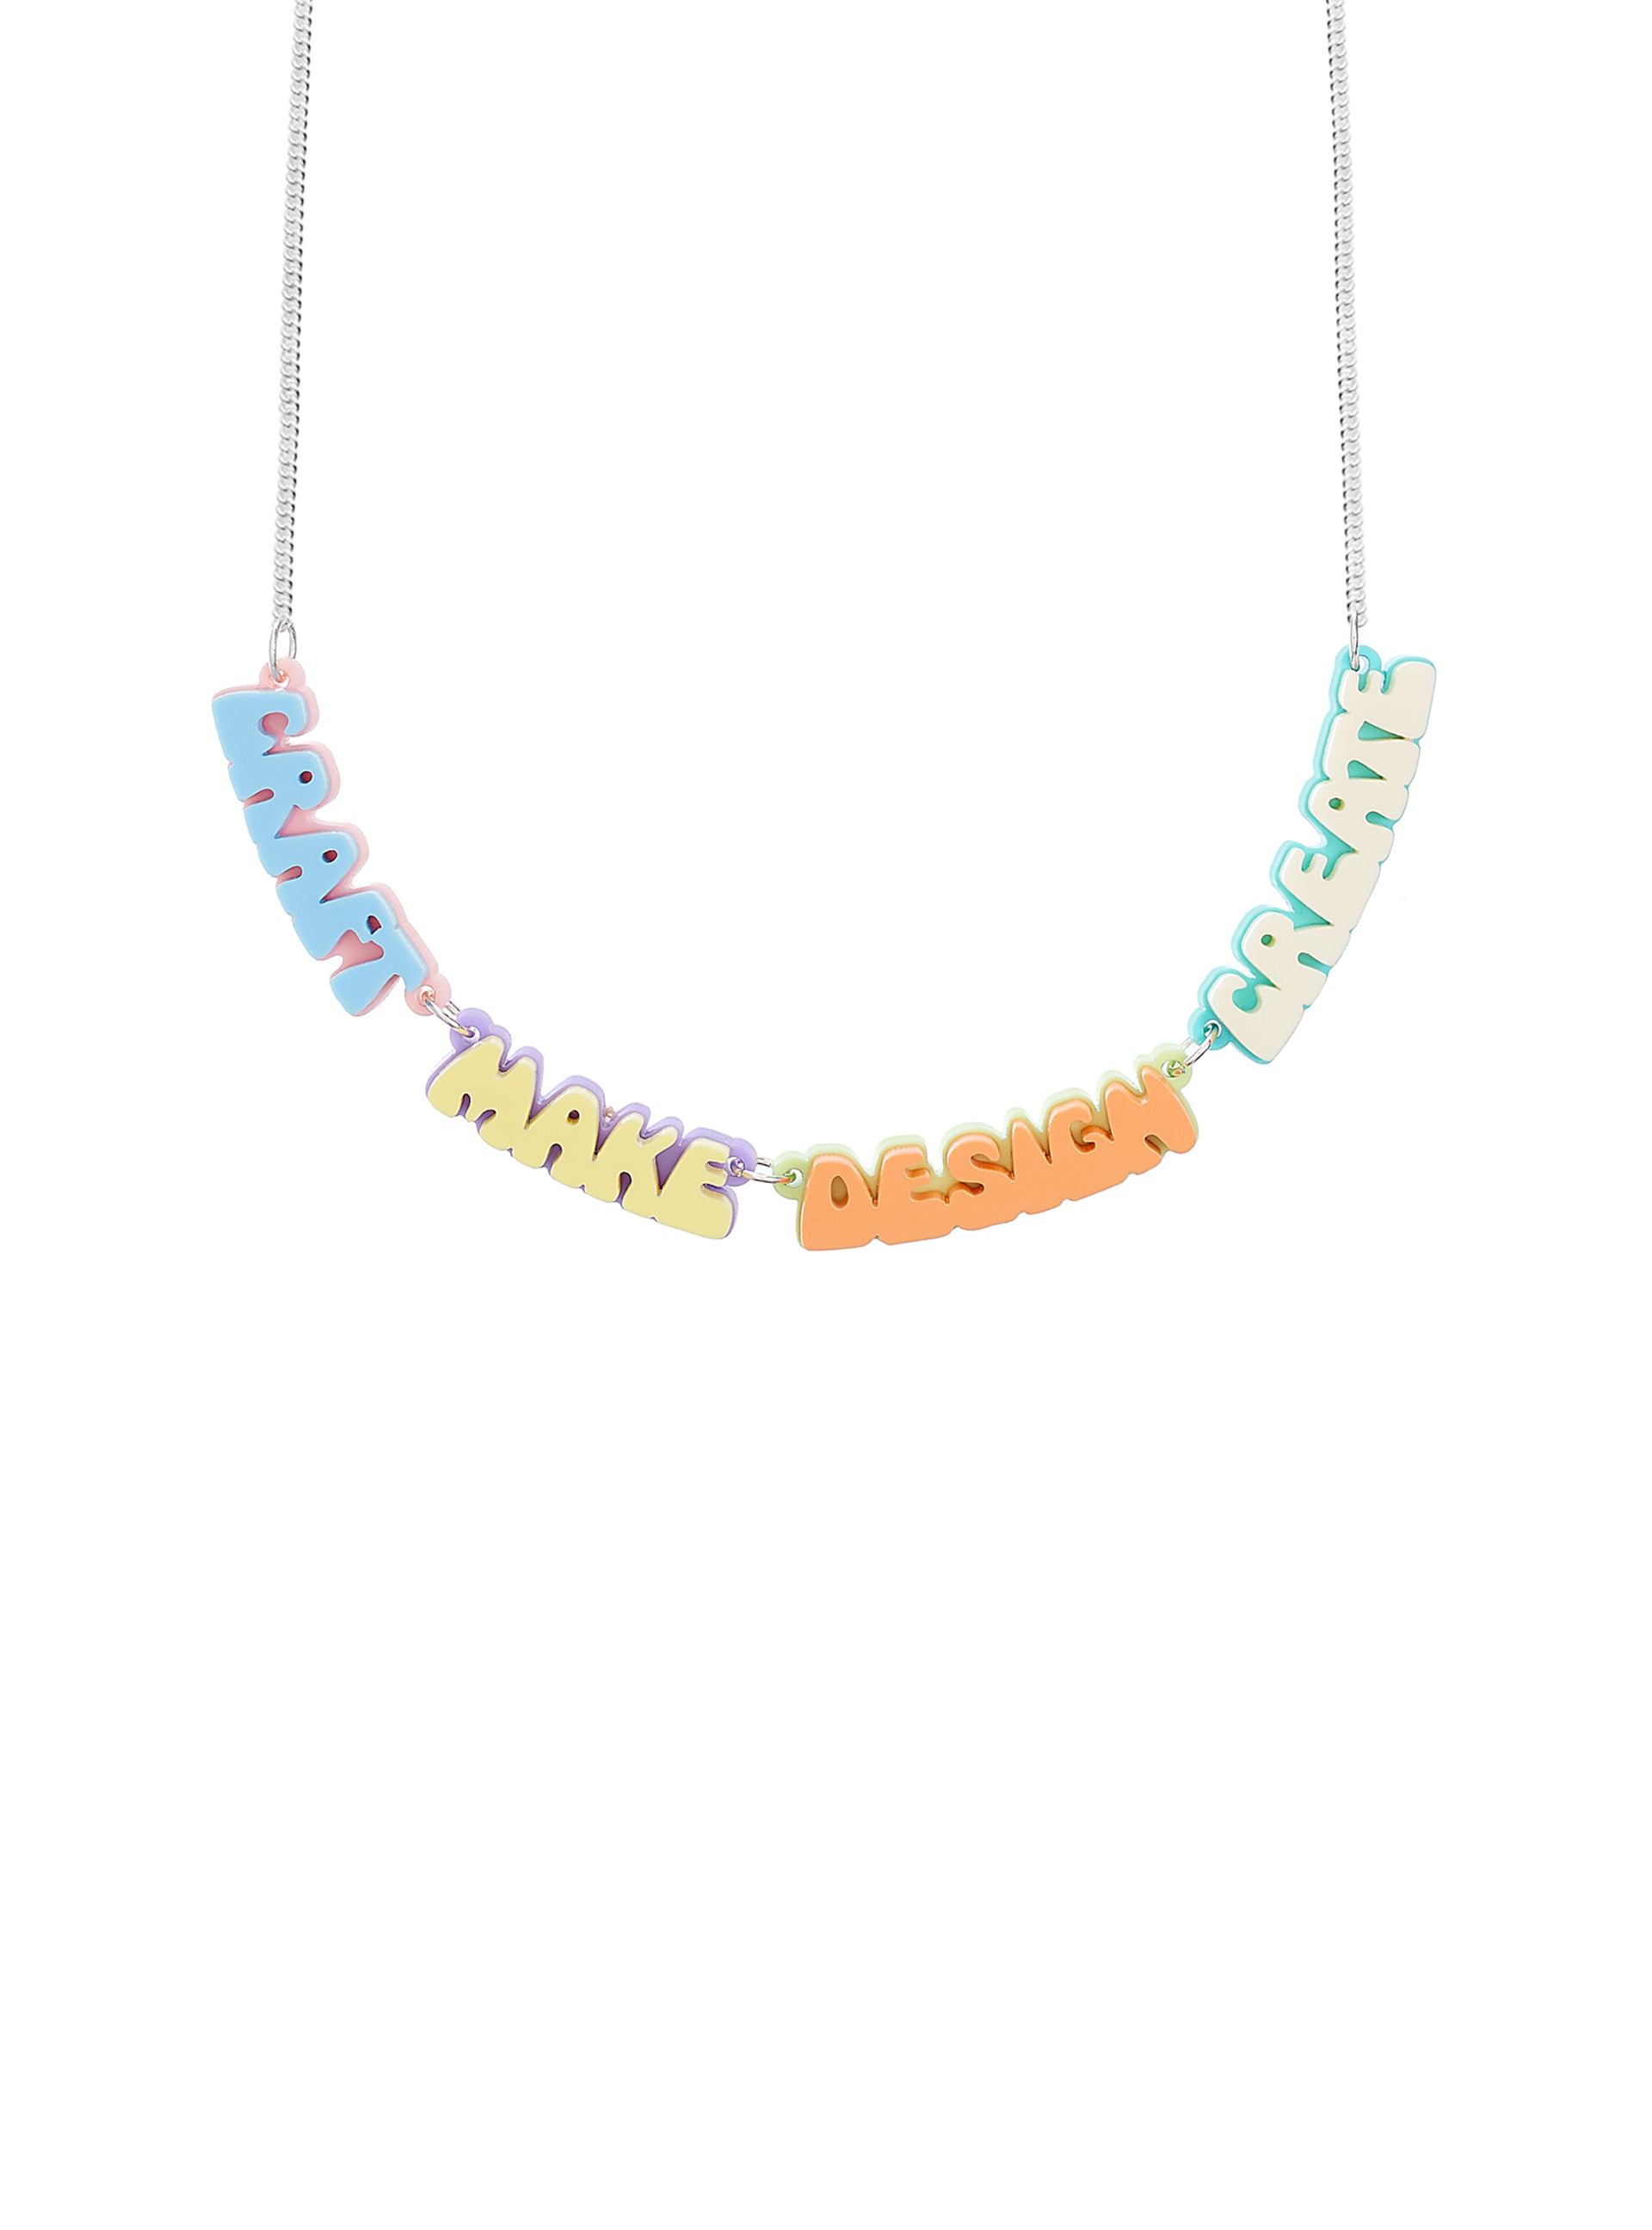 Creative Words Necklace